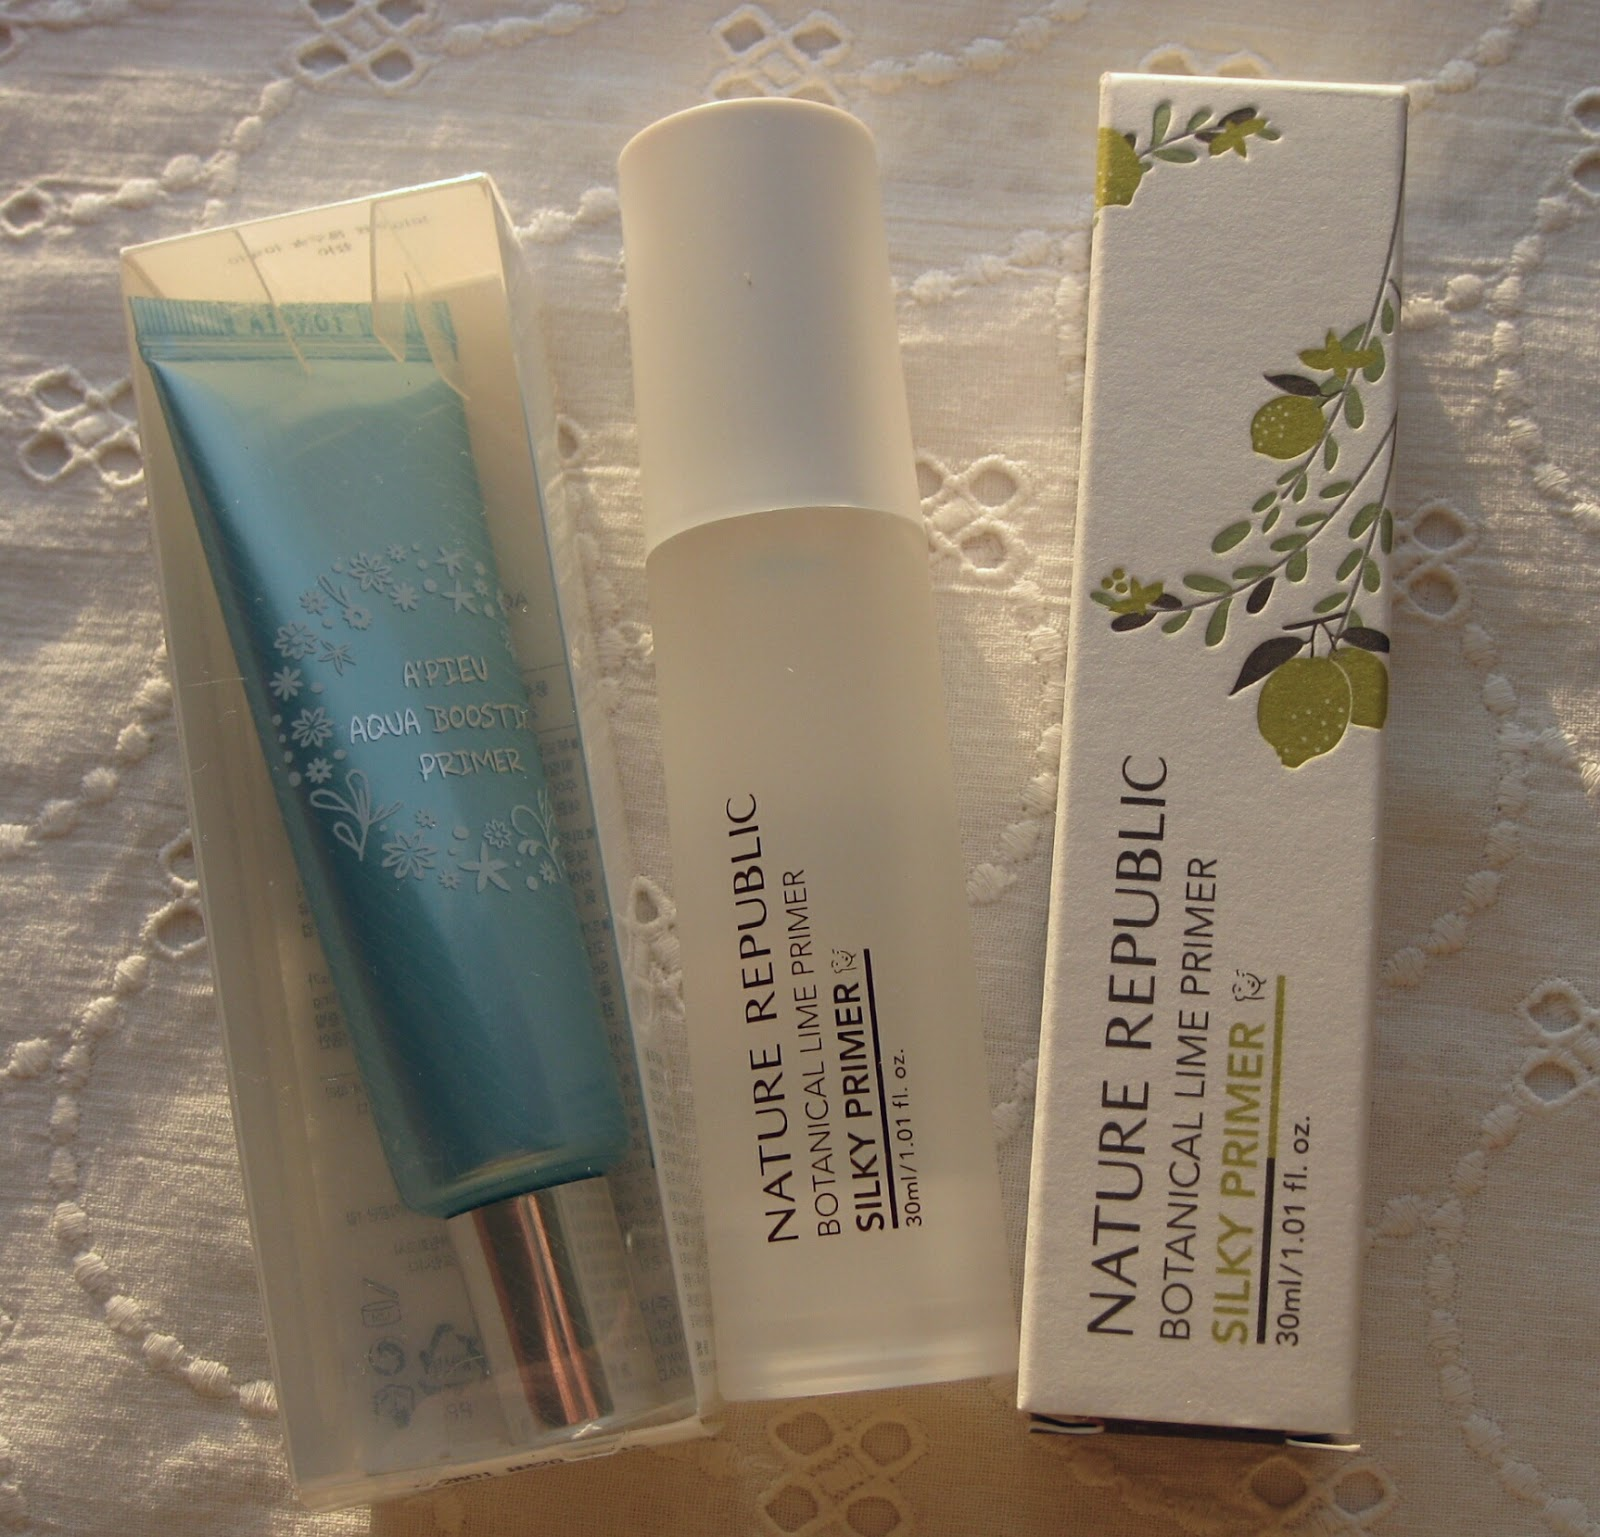 A'PIEU Aqua Boosting Primer, NATURE REPUBLIC Botanical Lime Silky Primer